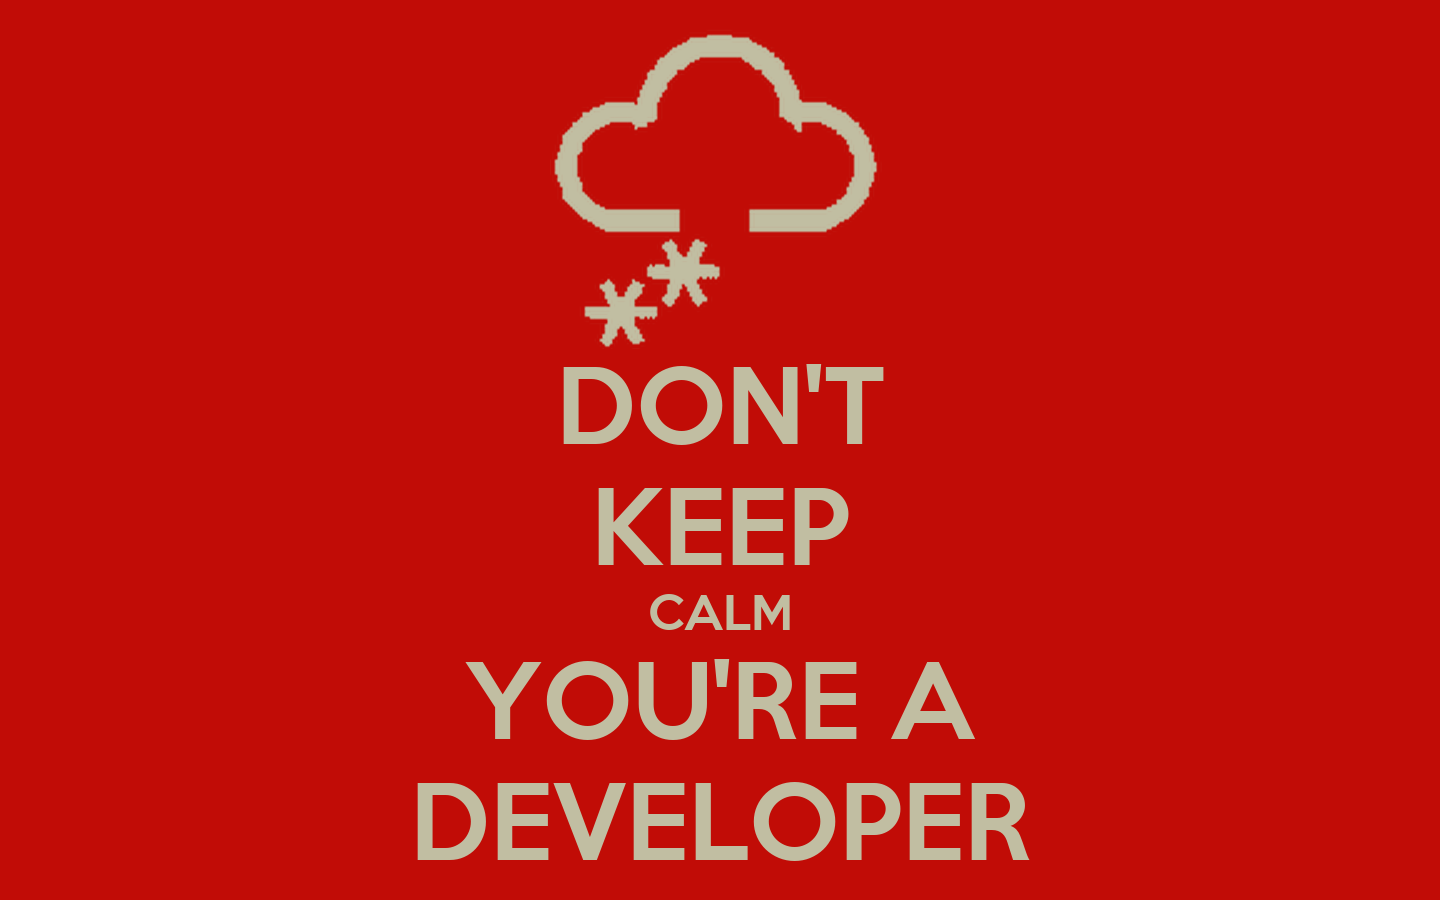 developer keep calm